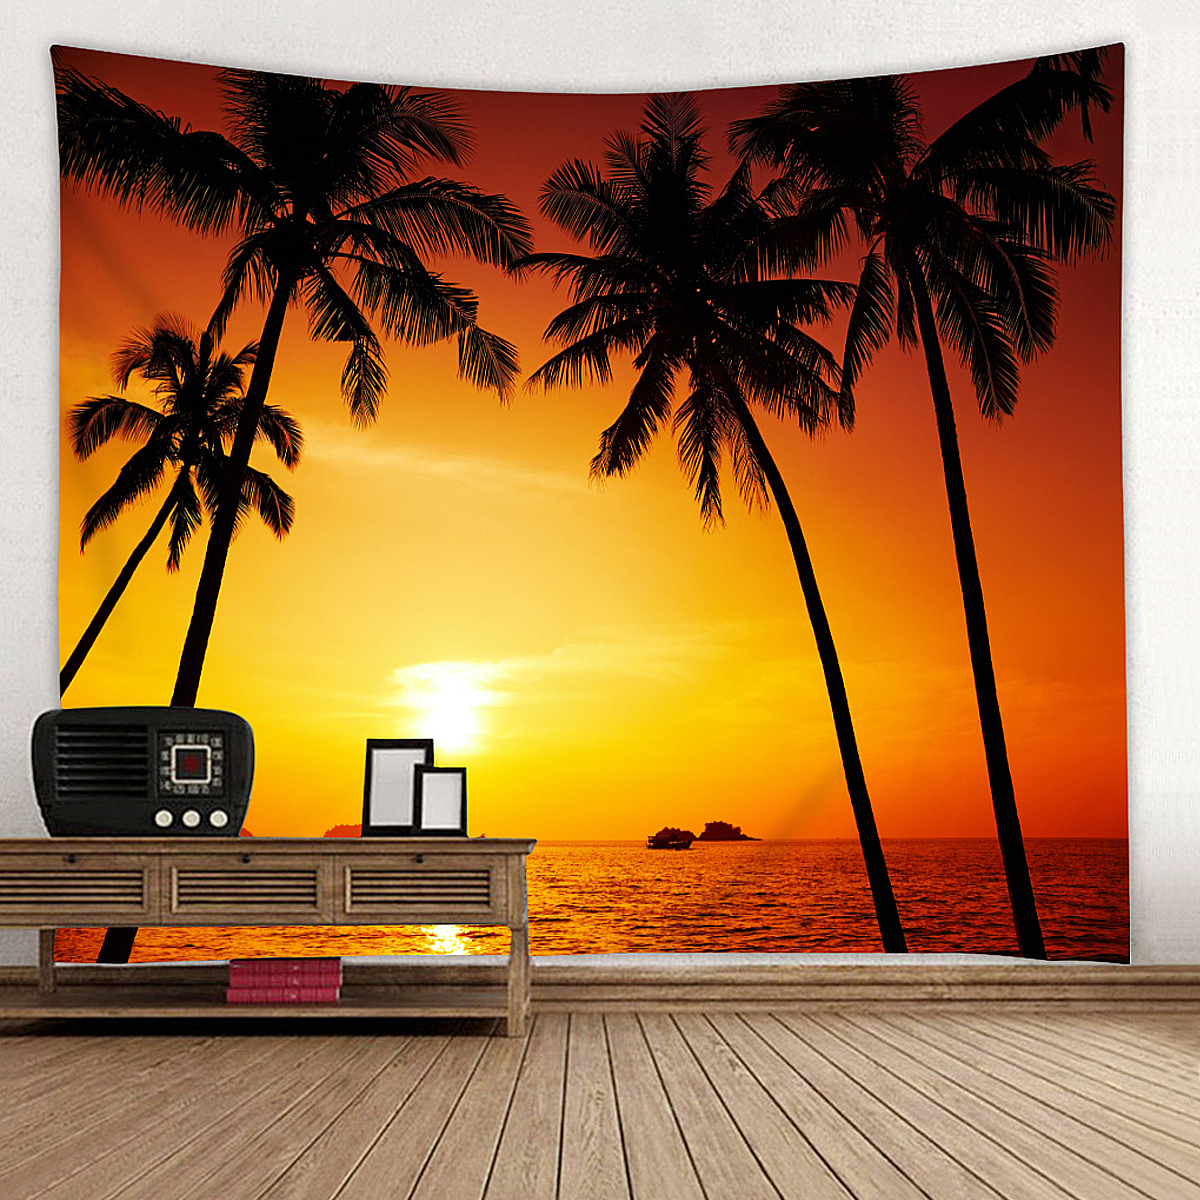 Summer Sunset Beach Sunrise Beach Wall Hanging Decor Art Wall Decoration Summer Beach Ca ...